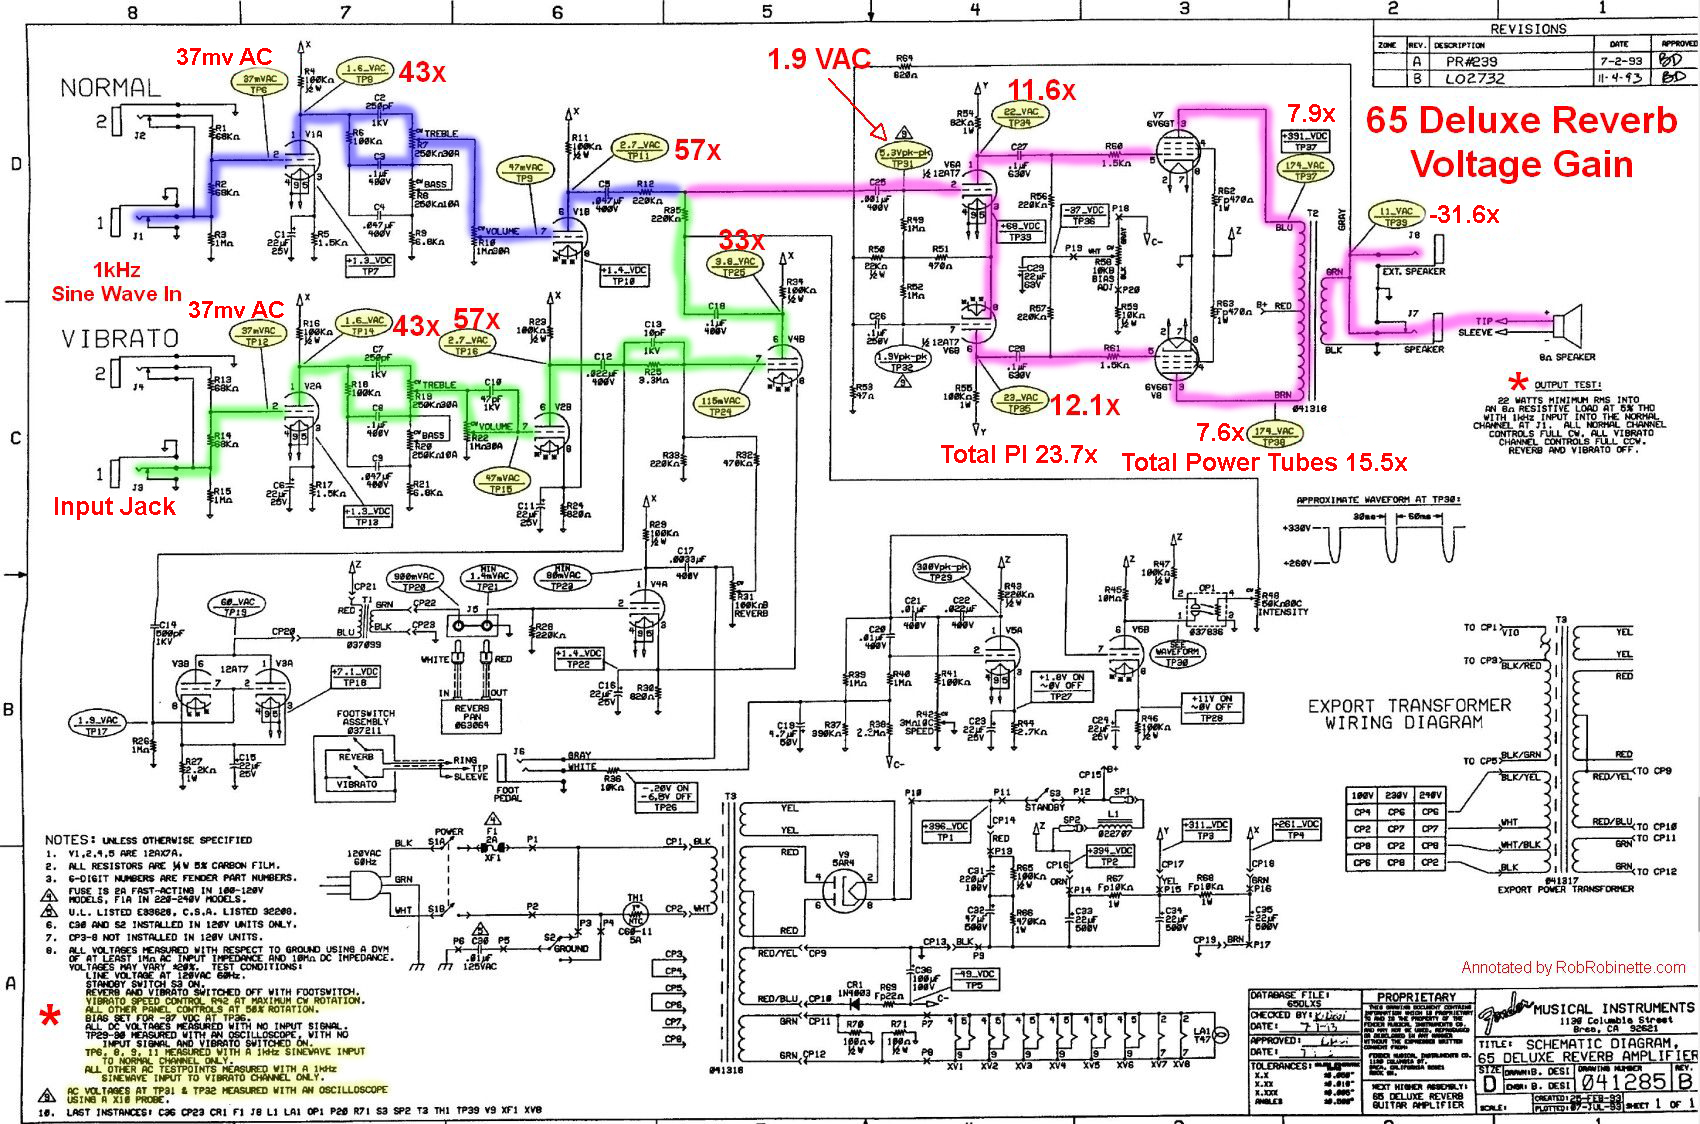 How The Ab763 Works Phase Invert Switch Electronic Design A 1khz 37 Millivolt Sine Wave Ac Audio Signal Is Injected At 65 Deluxe Reverb Normal And Vibrato Channels Hi Input Jack Upper Left With All